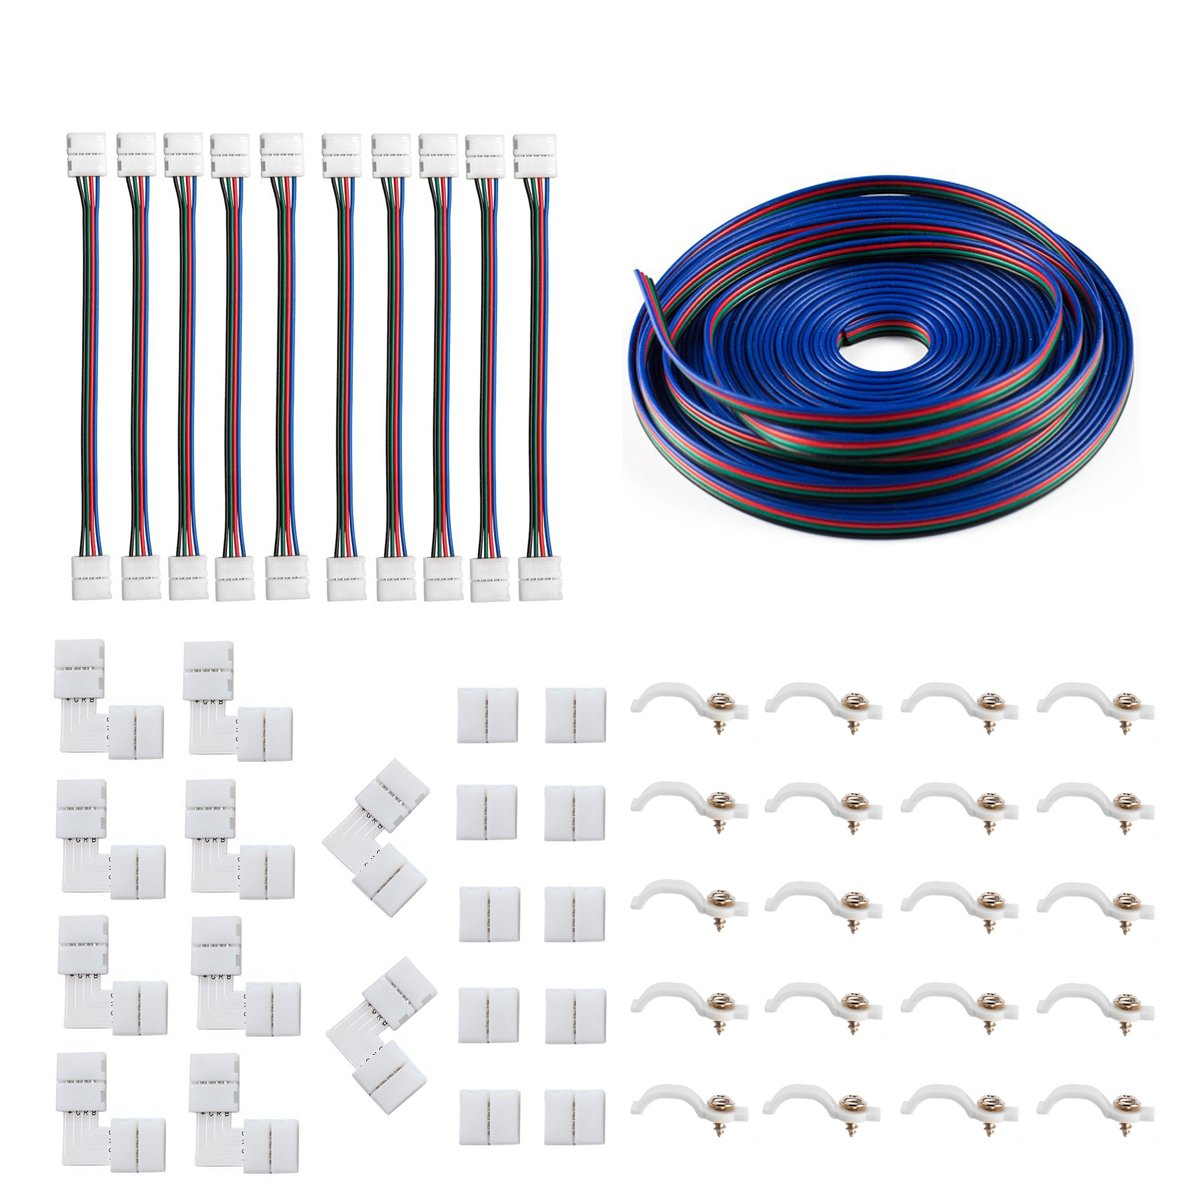 5050 4Pin LED Strip Connector Kit - iCreating 10mm RGB LED Connector Kit  includes 32 8FT RGB Extension Cable, 10x LED Strip Jumper, 10x L Shape